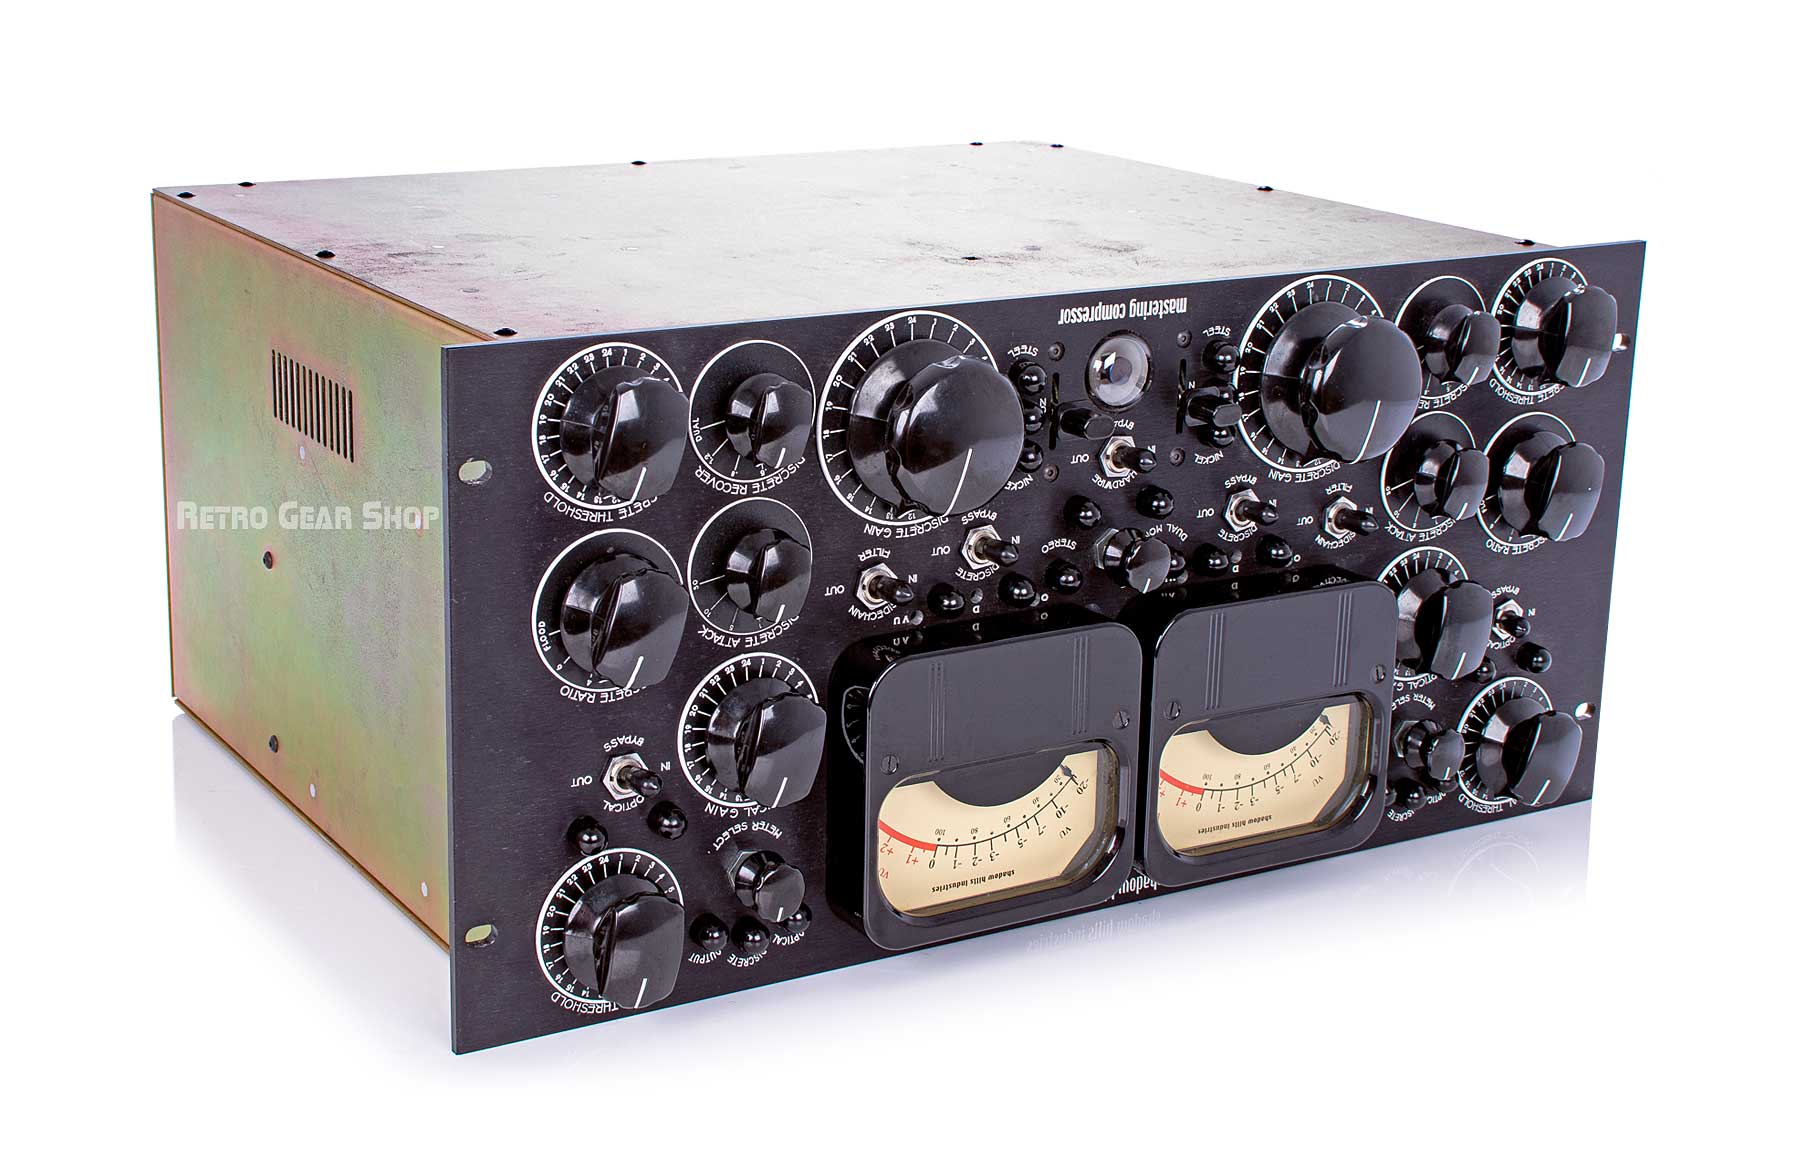 Shadow Hills Mastering Compressor Bottom Right